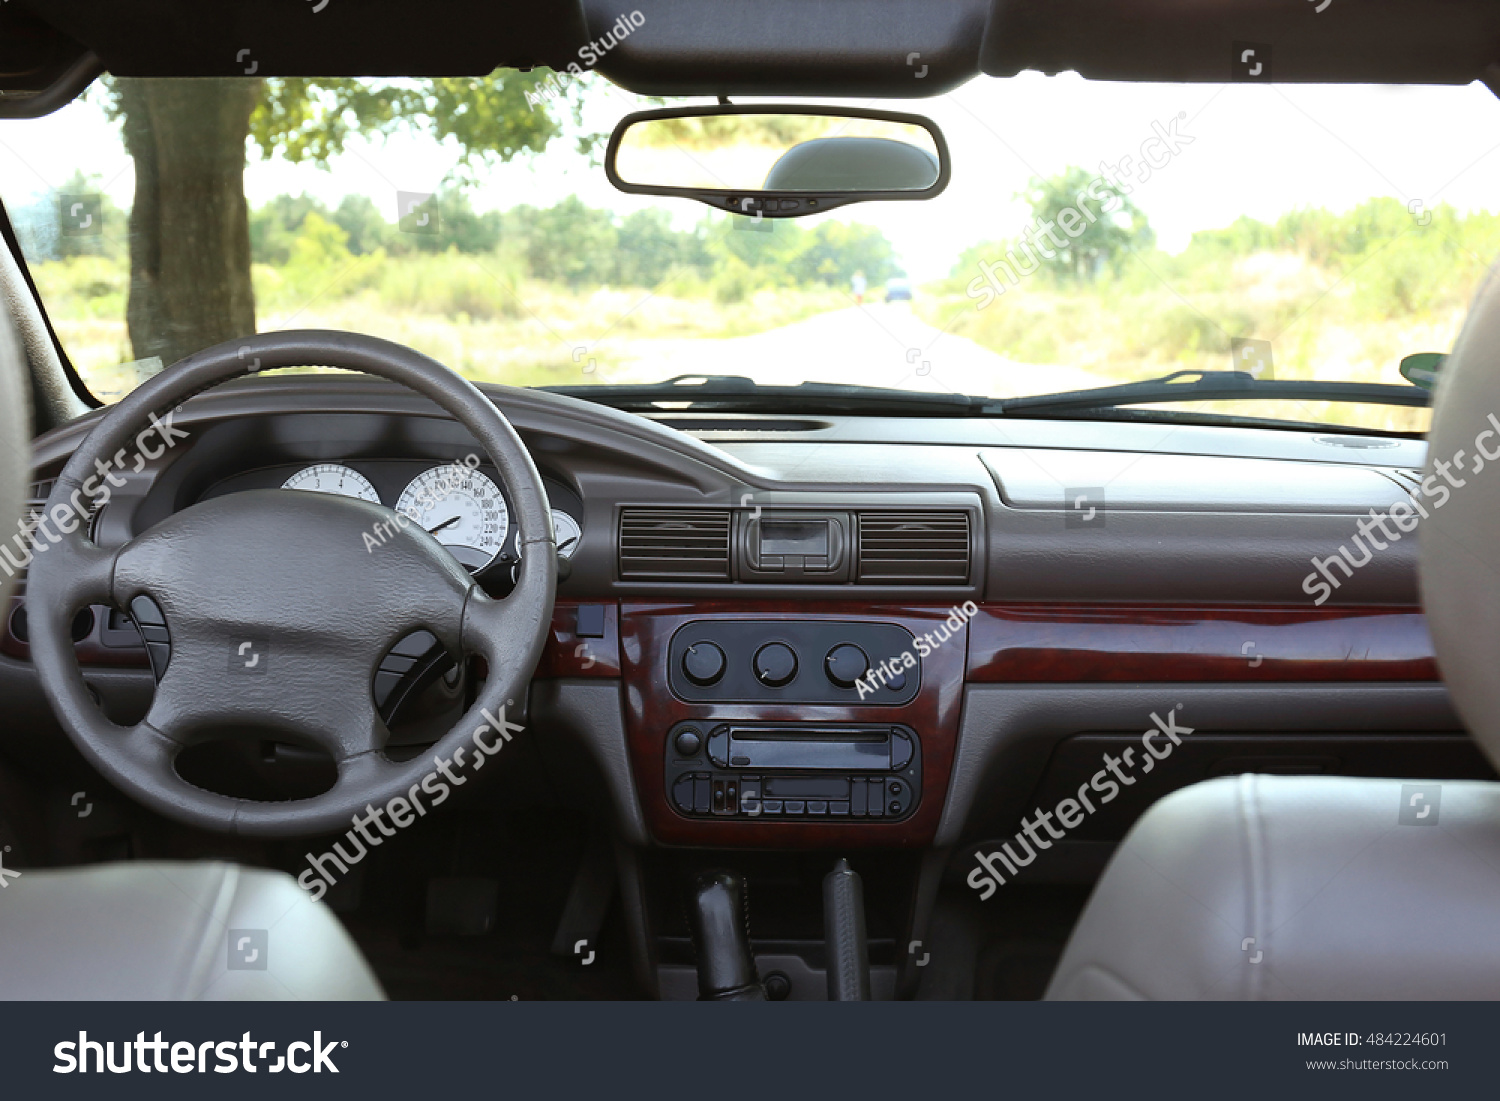 Dashboard Car Panel Stock Photo Shutterstock - Car image sign of dashboardcar dashboard icons stock photospictures royalty free car